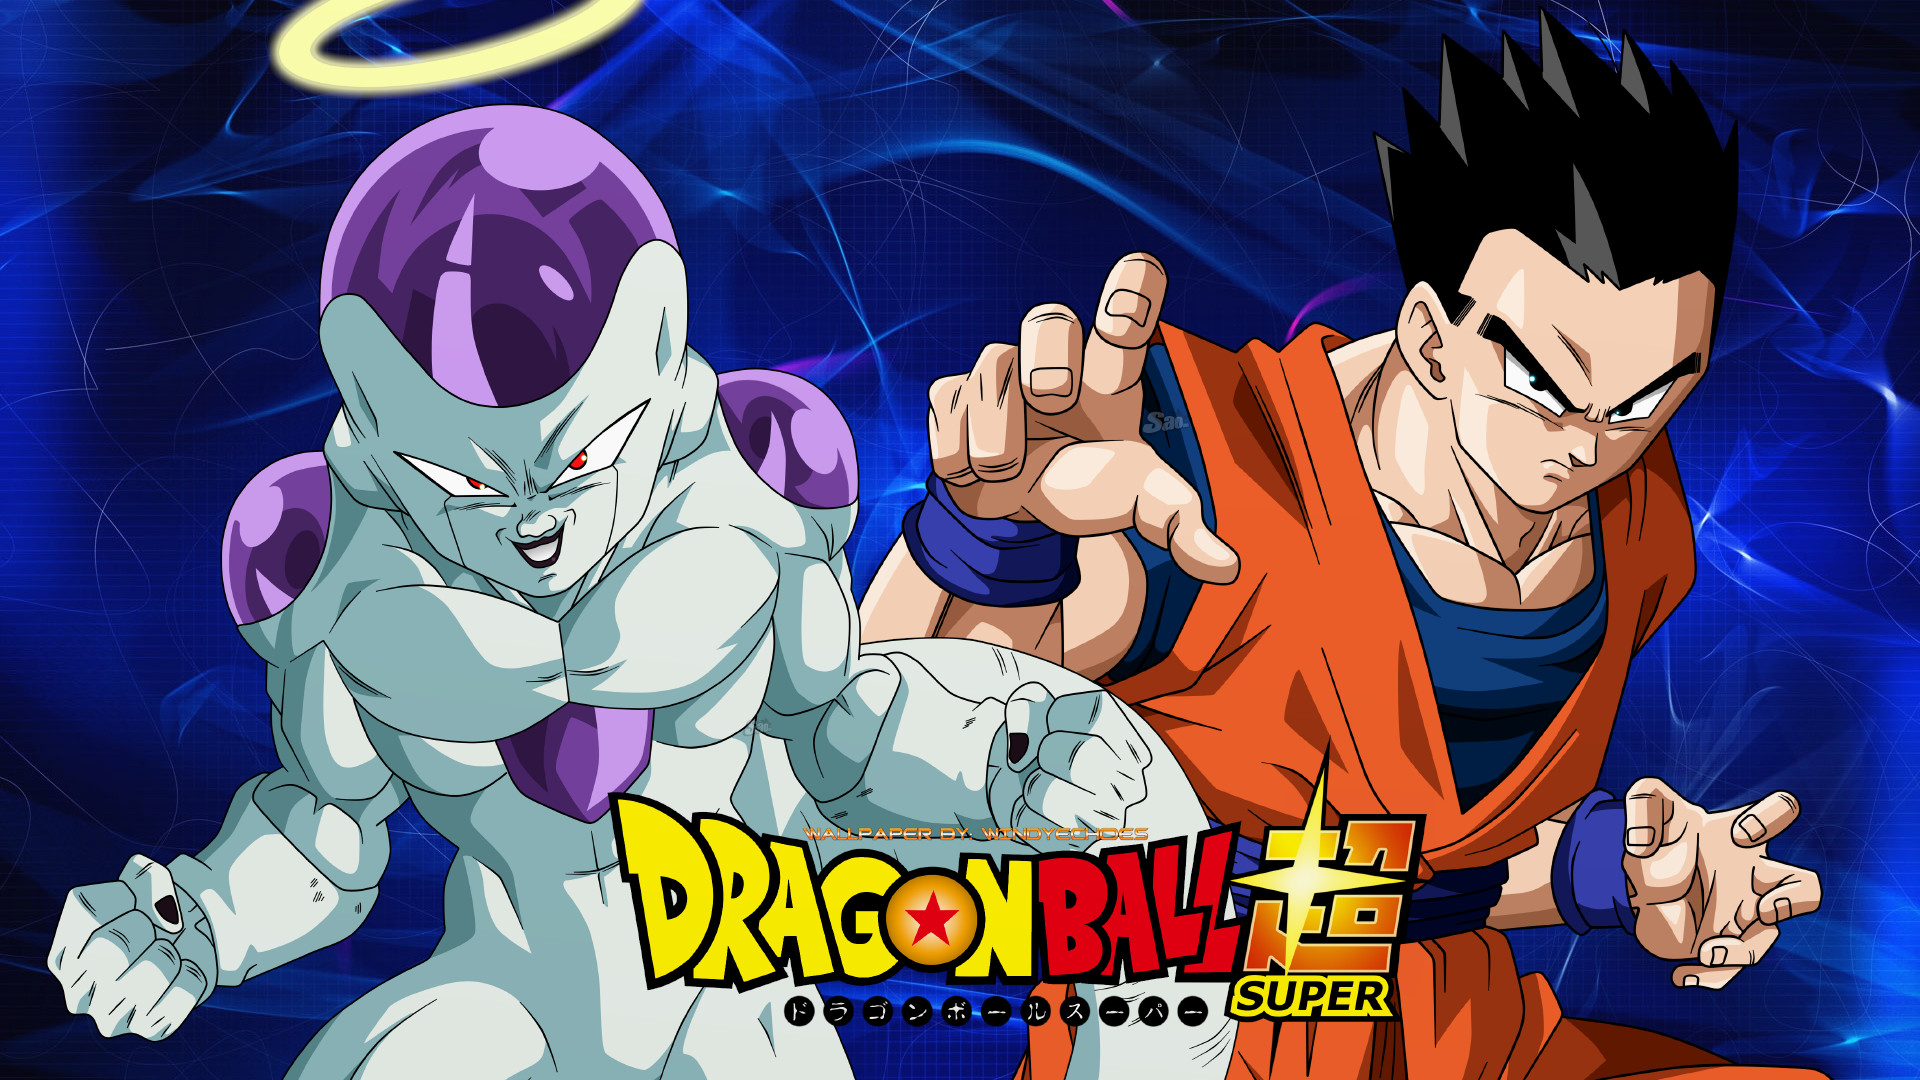 Res: 1920x1080, ... Ultimate Gohan VS Frieza - Tournament Of Power by WindyEchoes